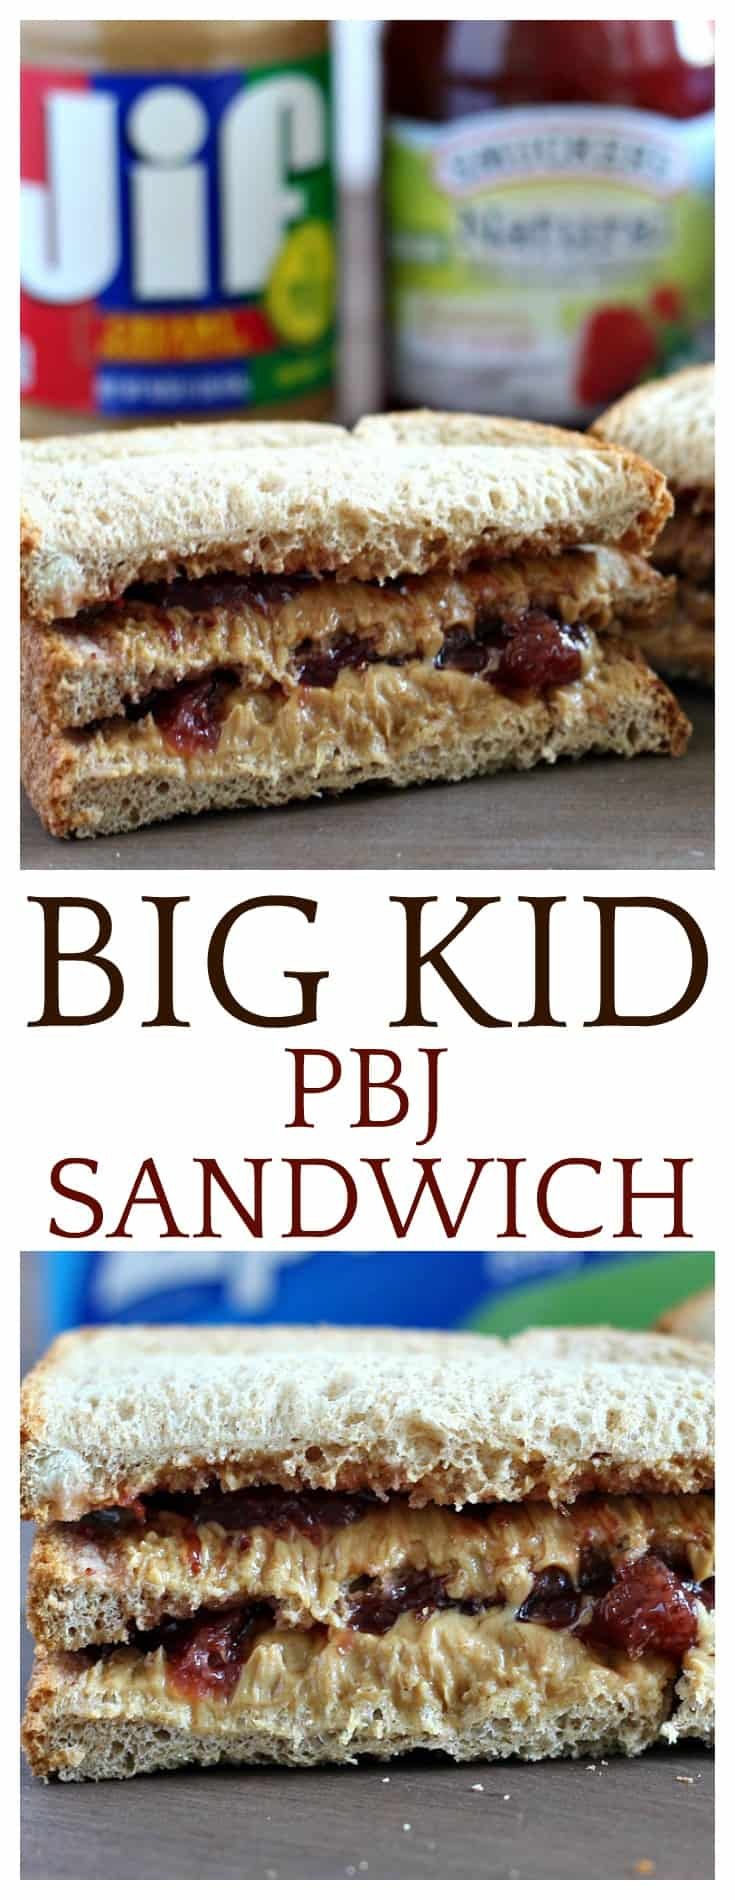 It's back to school time!  This super easy recipe for a Big Kid PBJ Sandwich is sure to keep your child energized all day long! We also like to call these Double Decker Peanut Butter and Jelly Sandwiches!